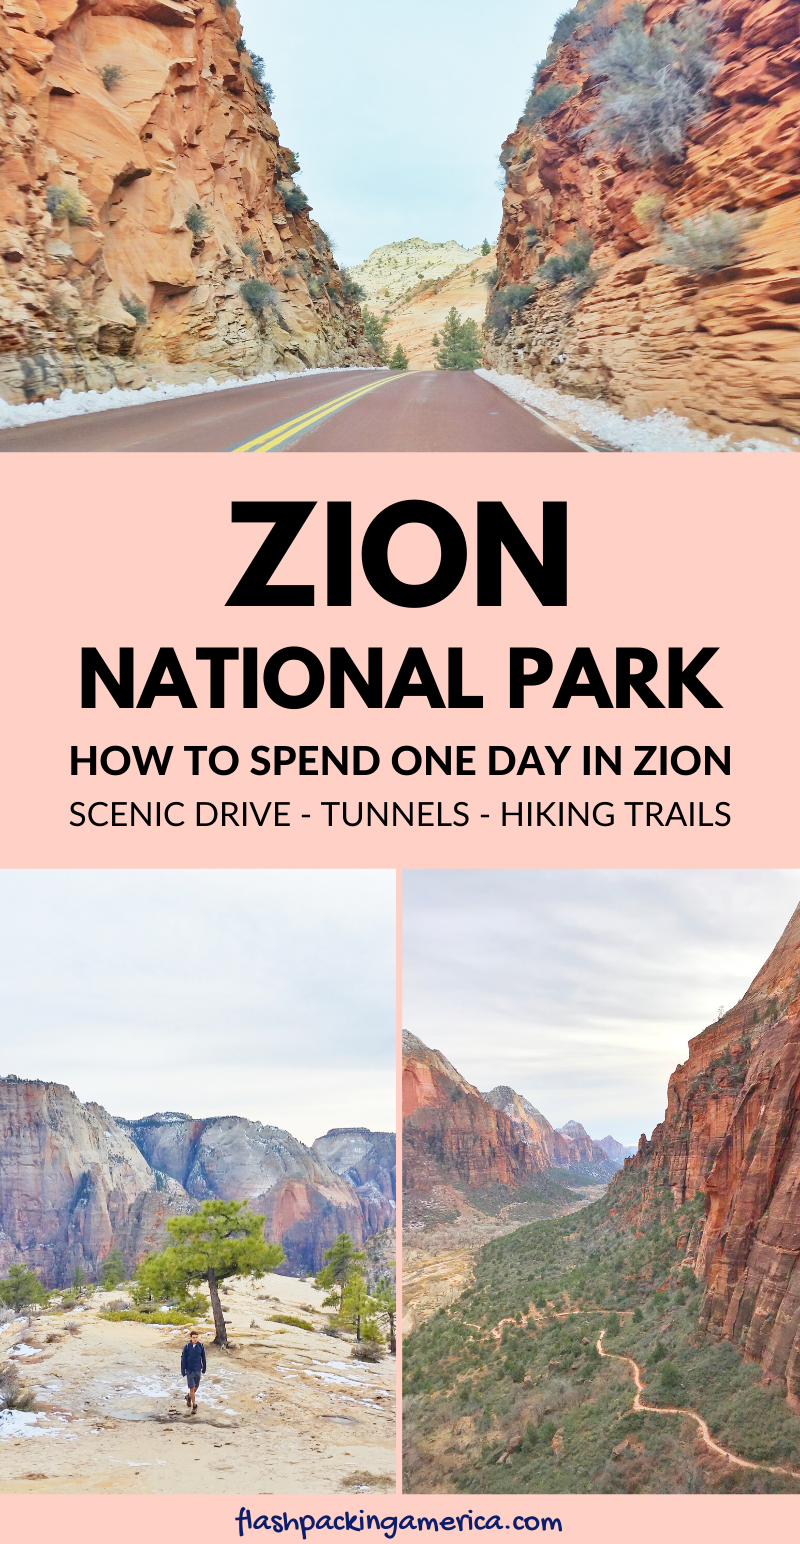 One day in Zion National Park - Utah road trip vac